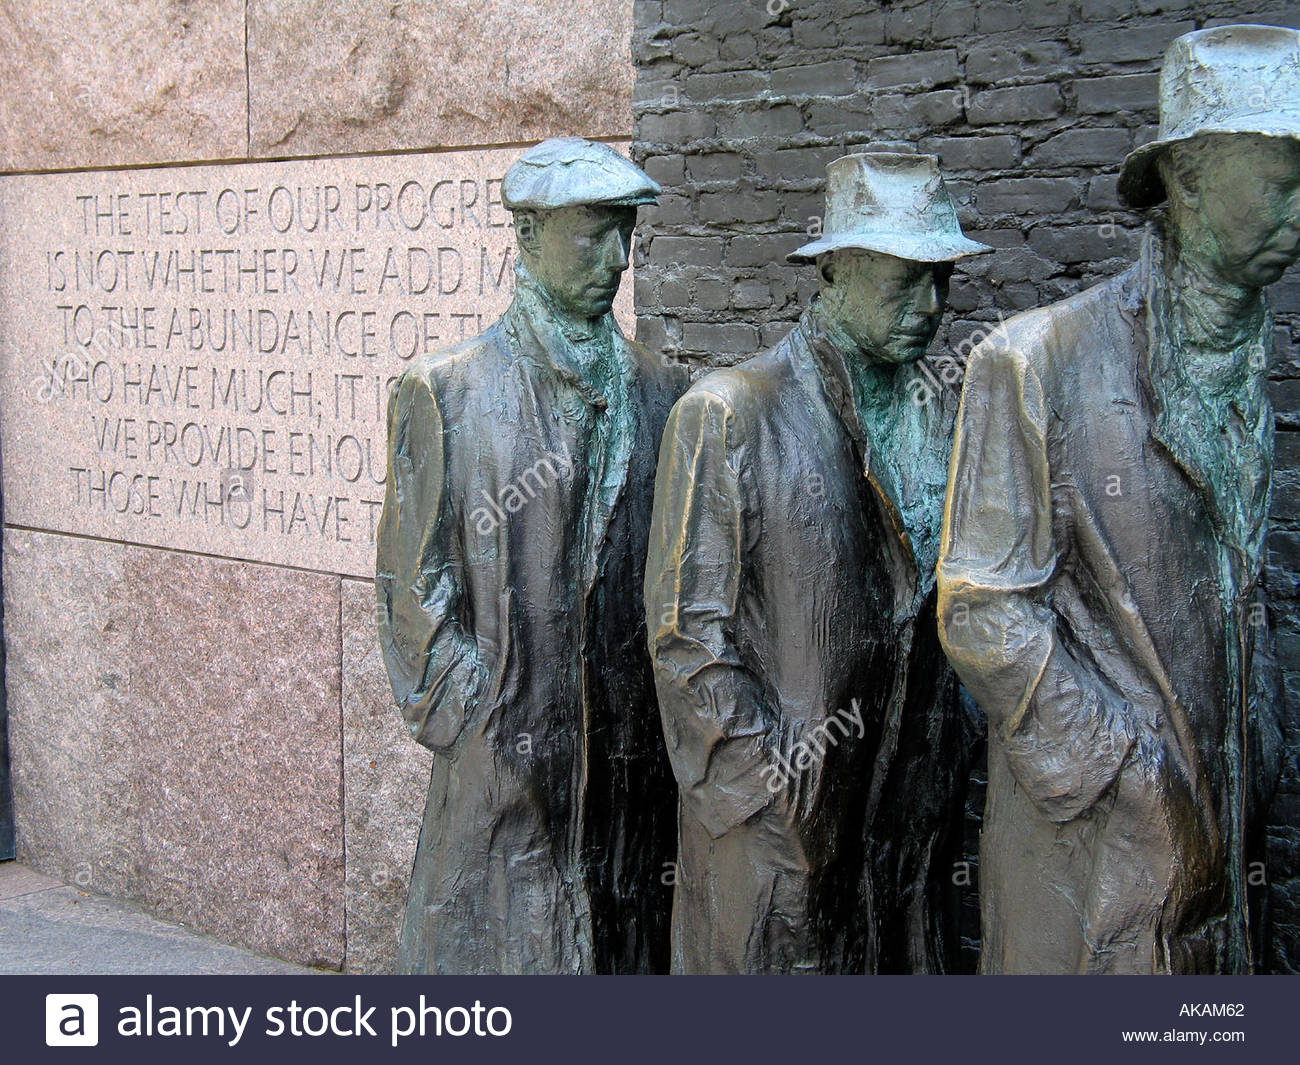 Part of bread line statue at FDR Memorial in Washington DC - Stock Image